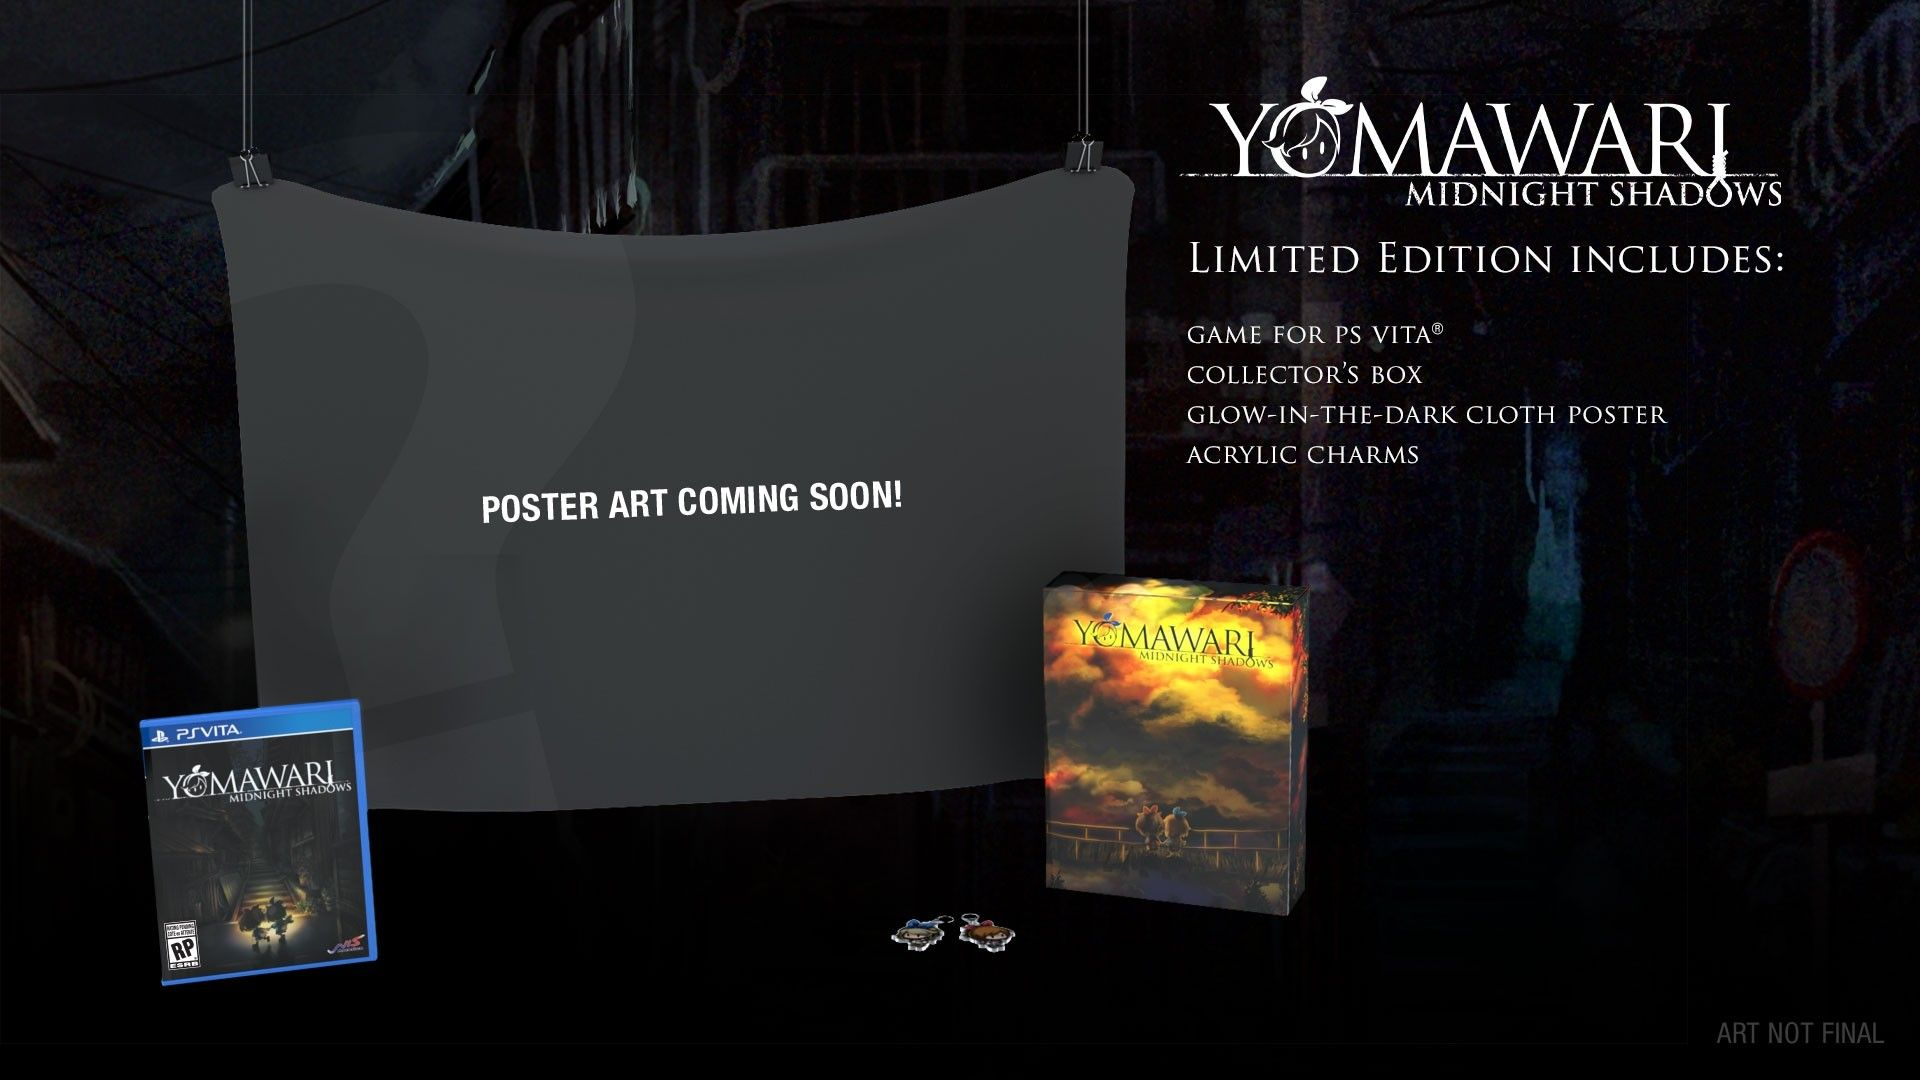 Yomawari Midnight Shadows Arriving On Ps Vita Ps4 In The West In October 17 Handheld Players